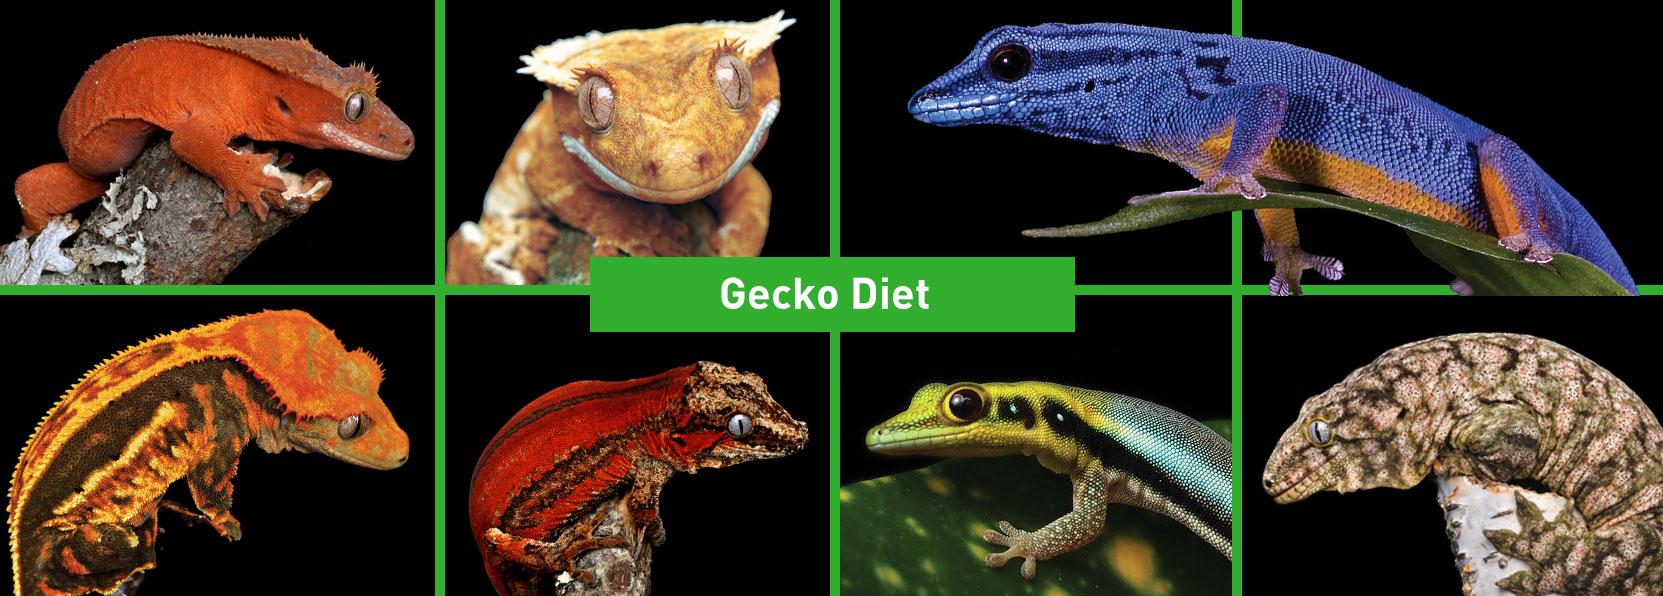 Gecko-Diets-Products-banner_m5cd-ik